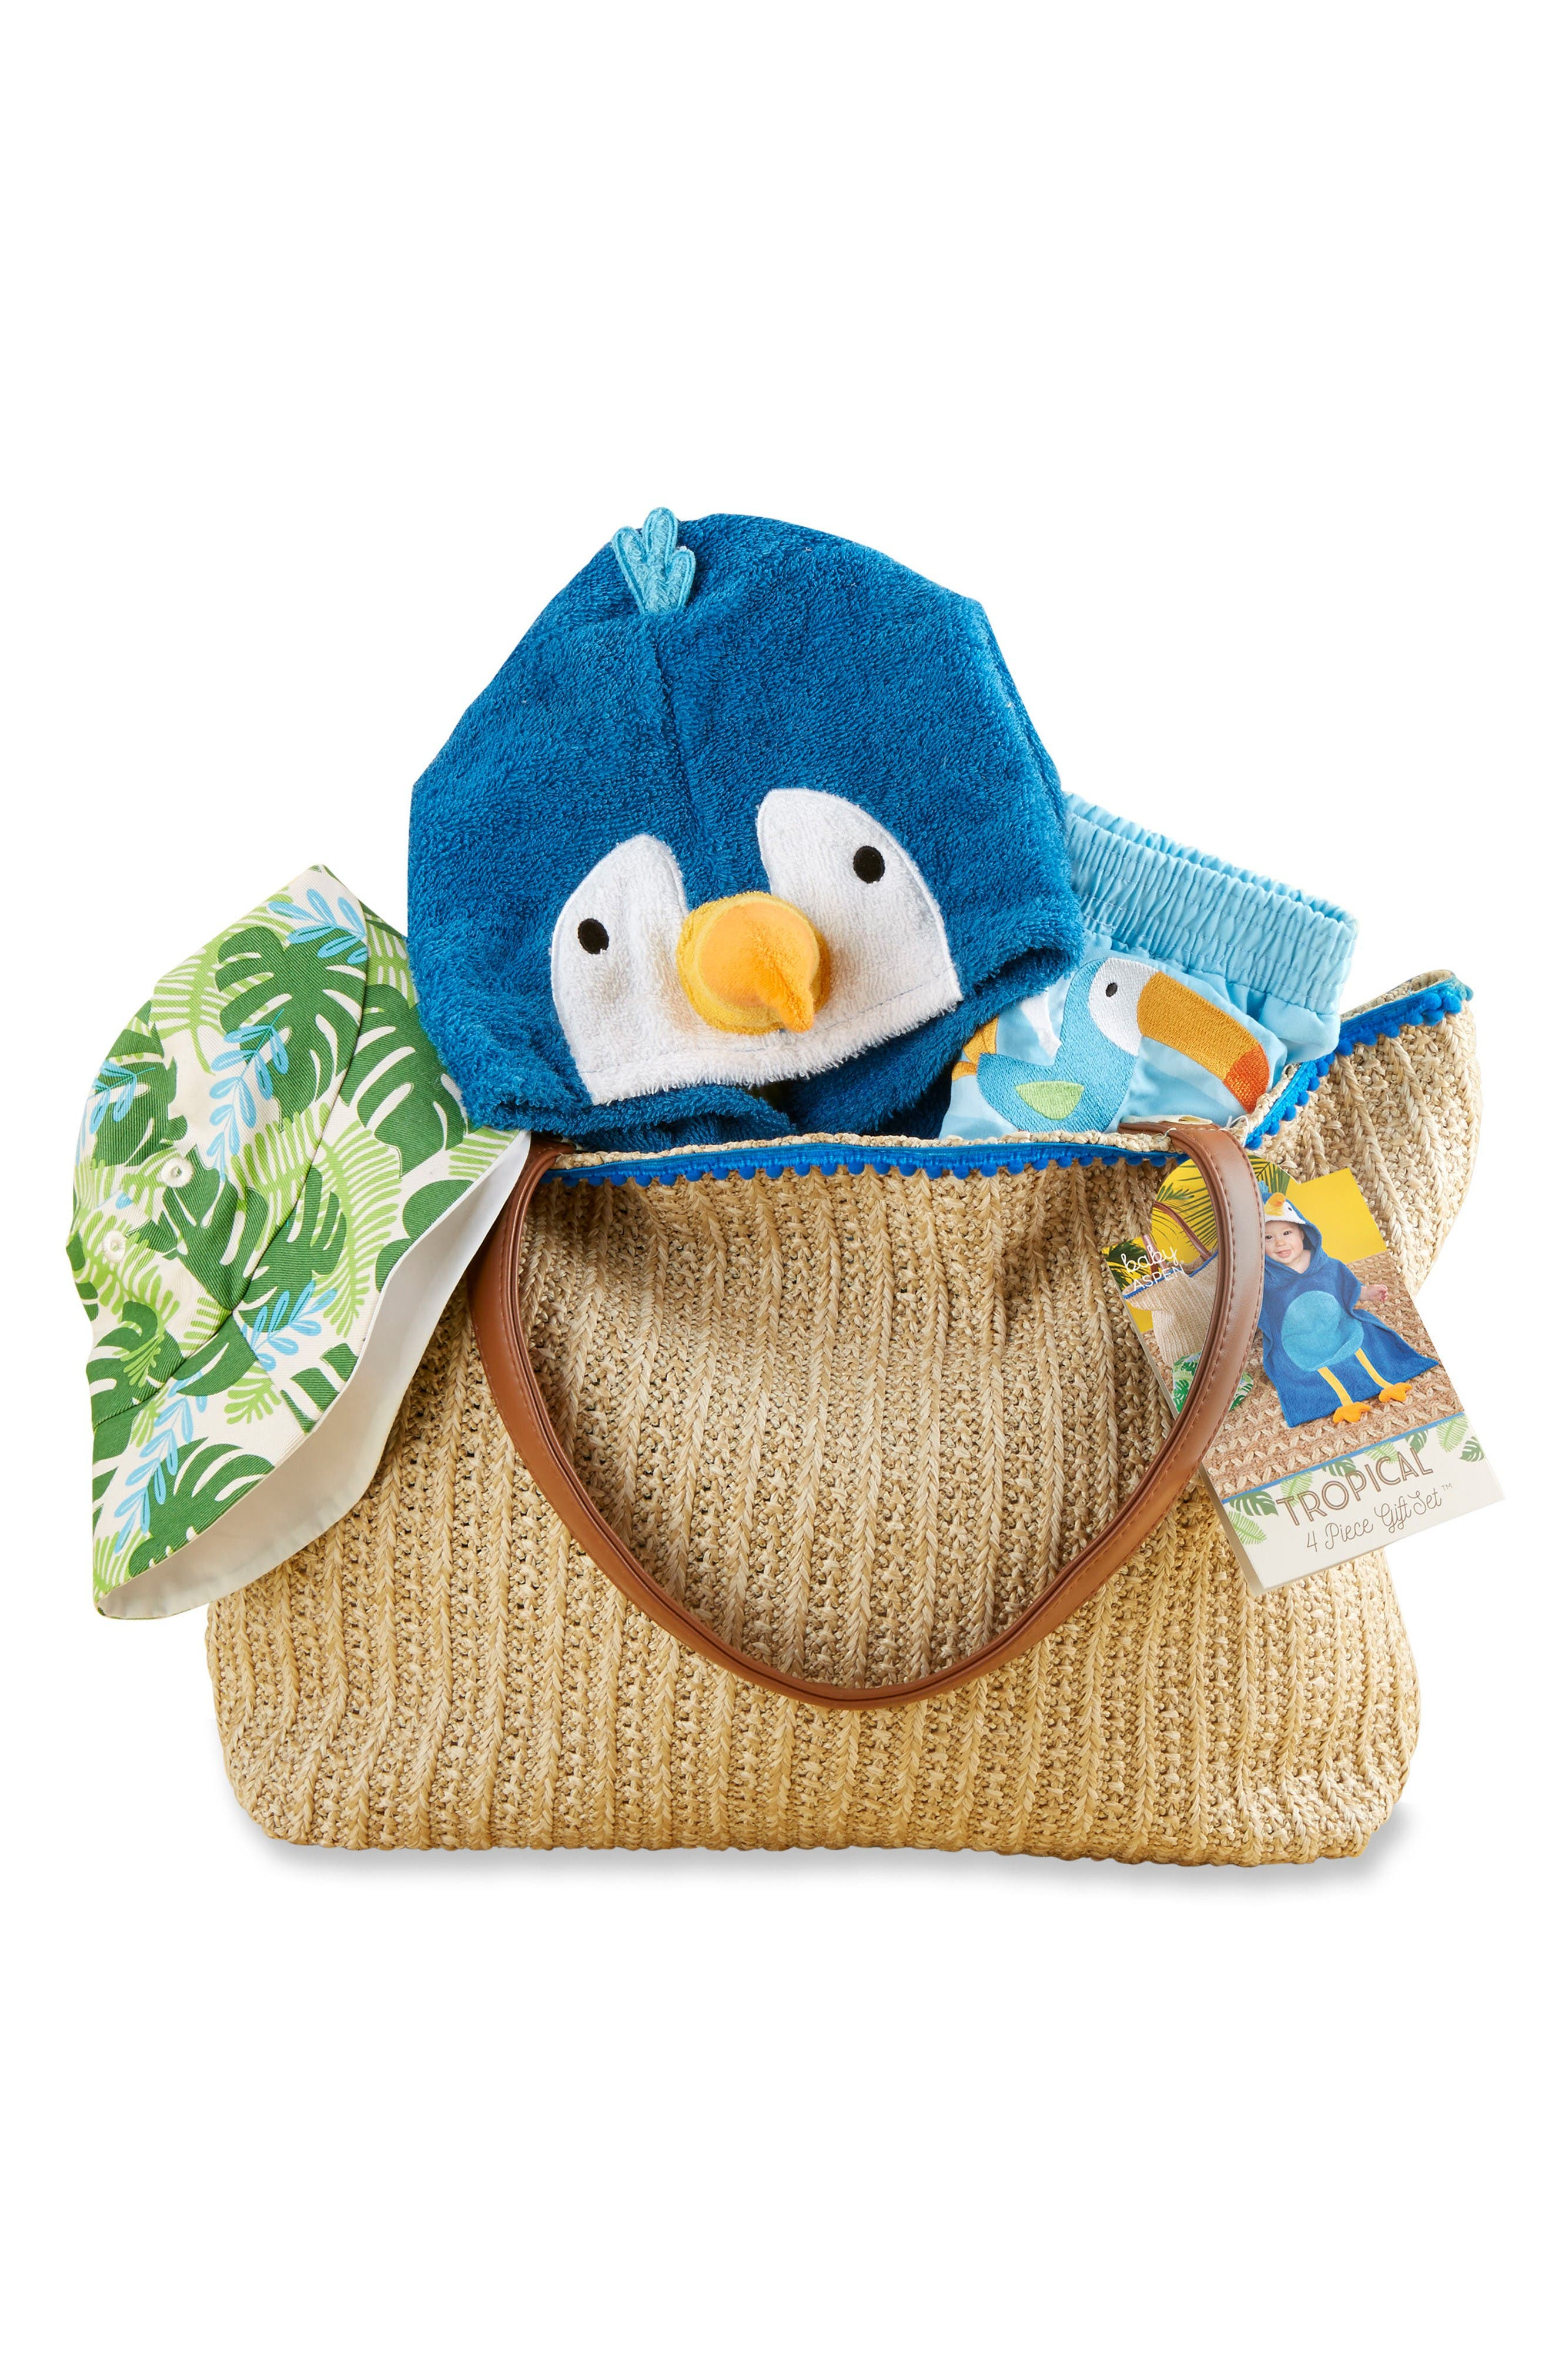 Tropical Hooded Towel, Swimsuit, Sun Hat & Tote Set,                         Main,                         color, Blue/ Grey/ White/ Brown